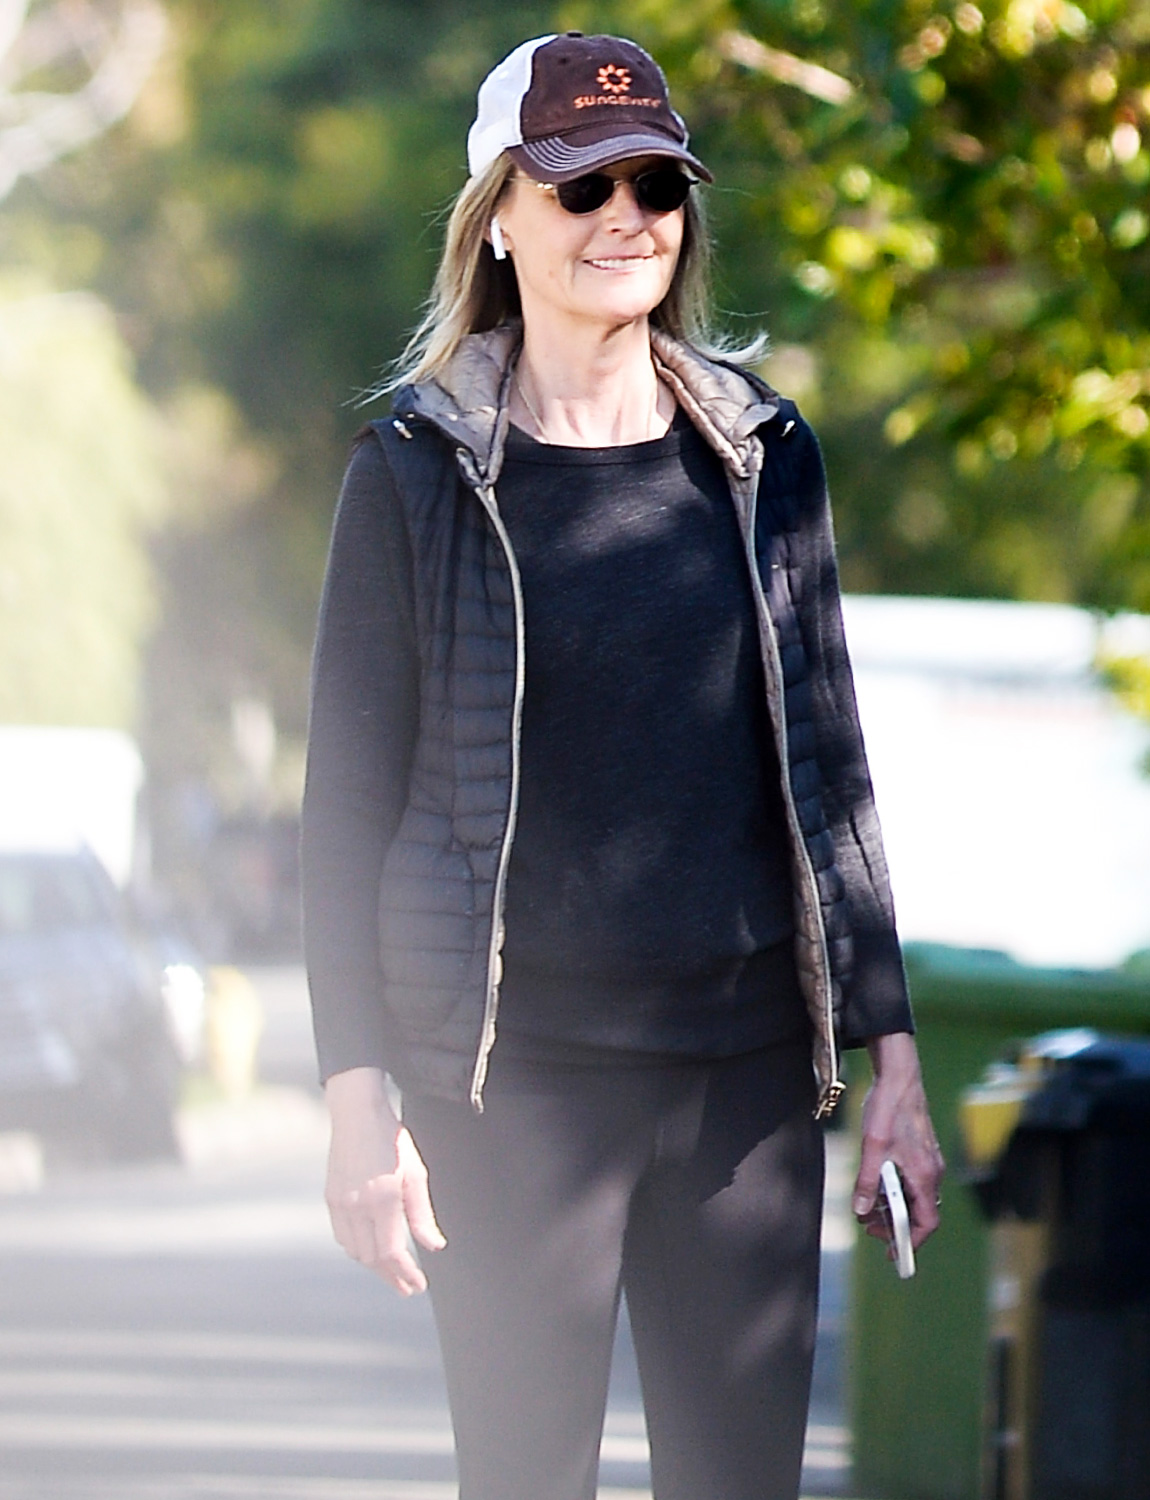 Helen Hunt Goes for a Walk During the Mandatory Quarantine in California.